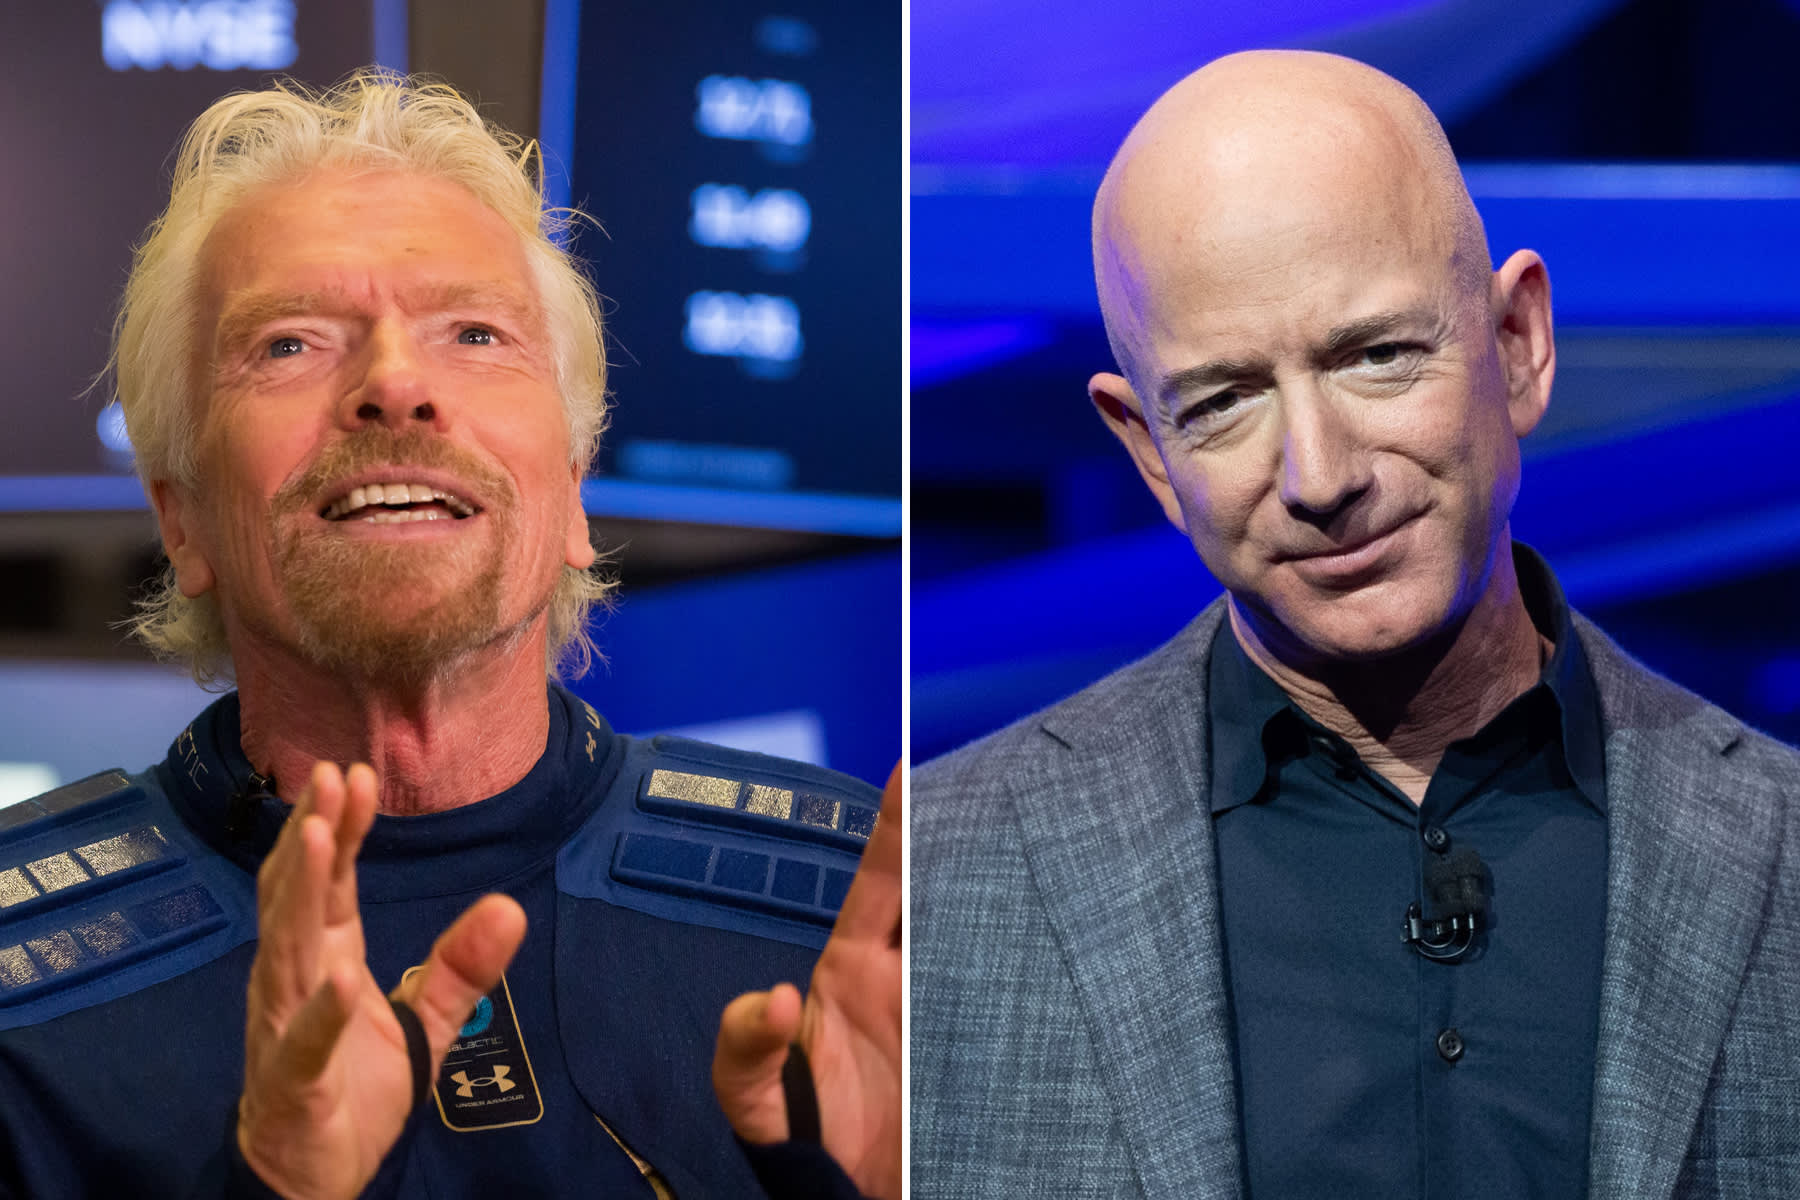 Billionaires fight over what is actual outer space as Branson gets set to launch before Bezos